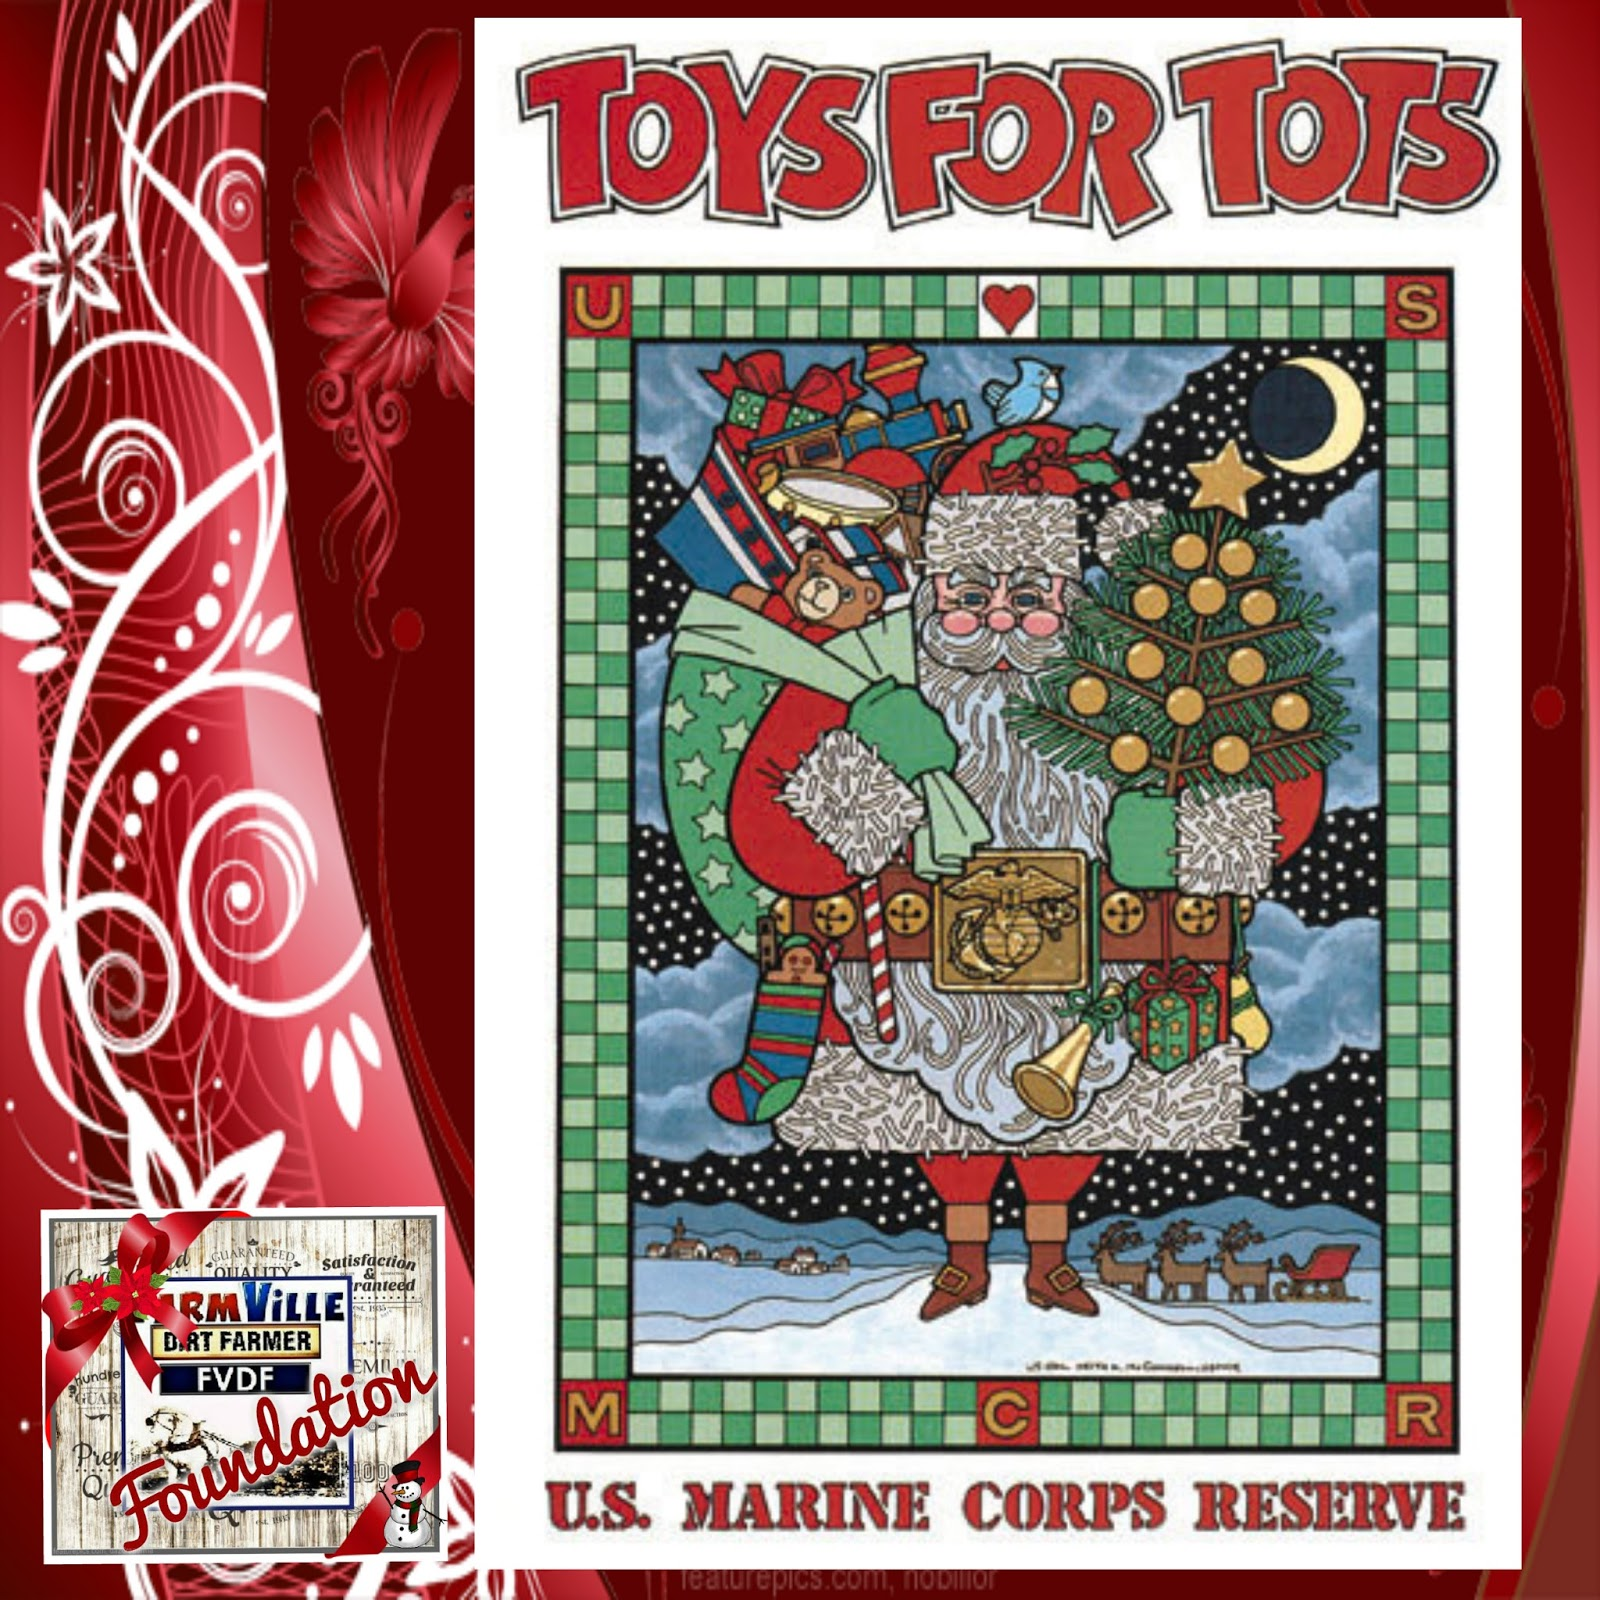 Toys For Tots Founder : The dirt farmer foundation s cause it december